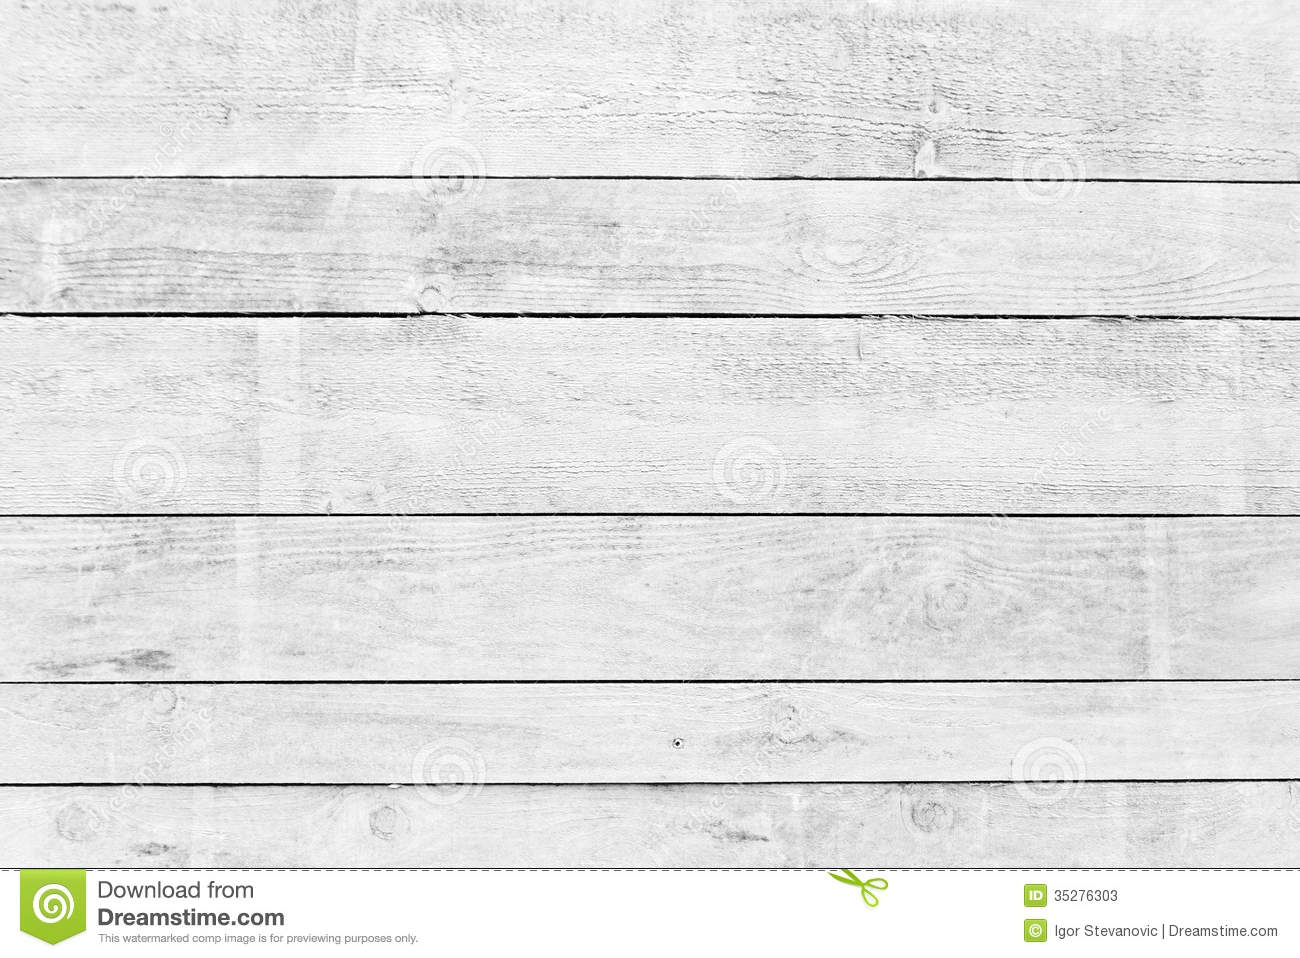 White wood planks texture with natural patterns background.